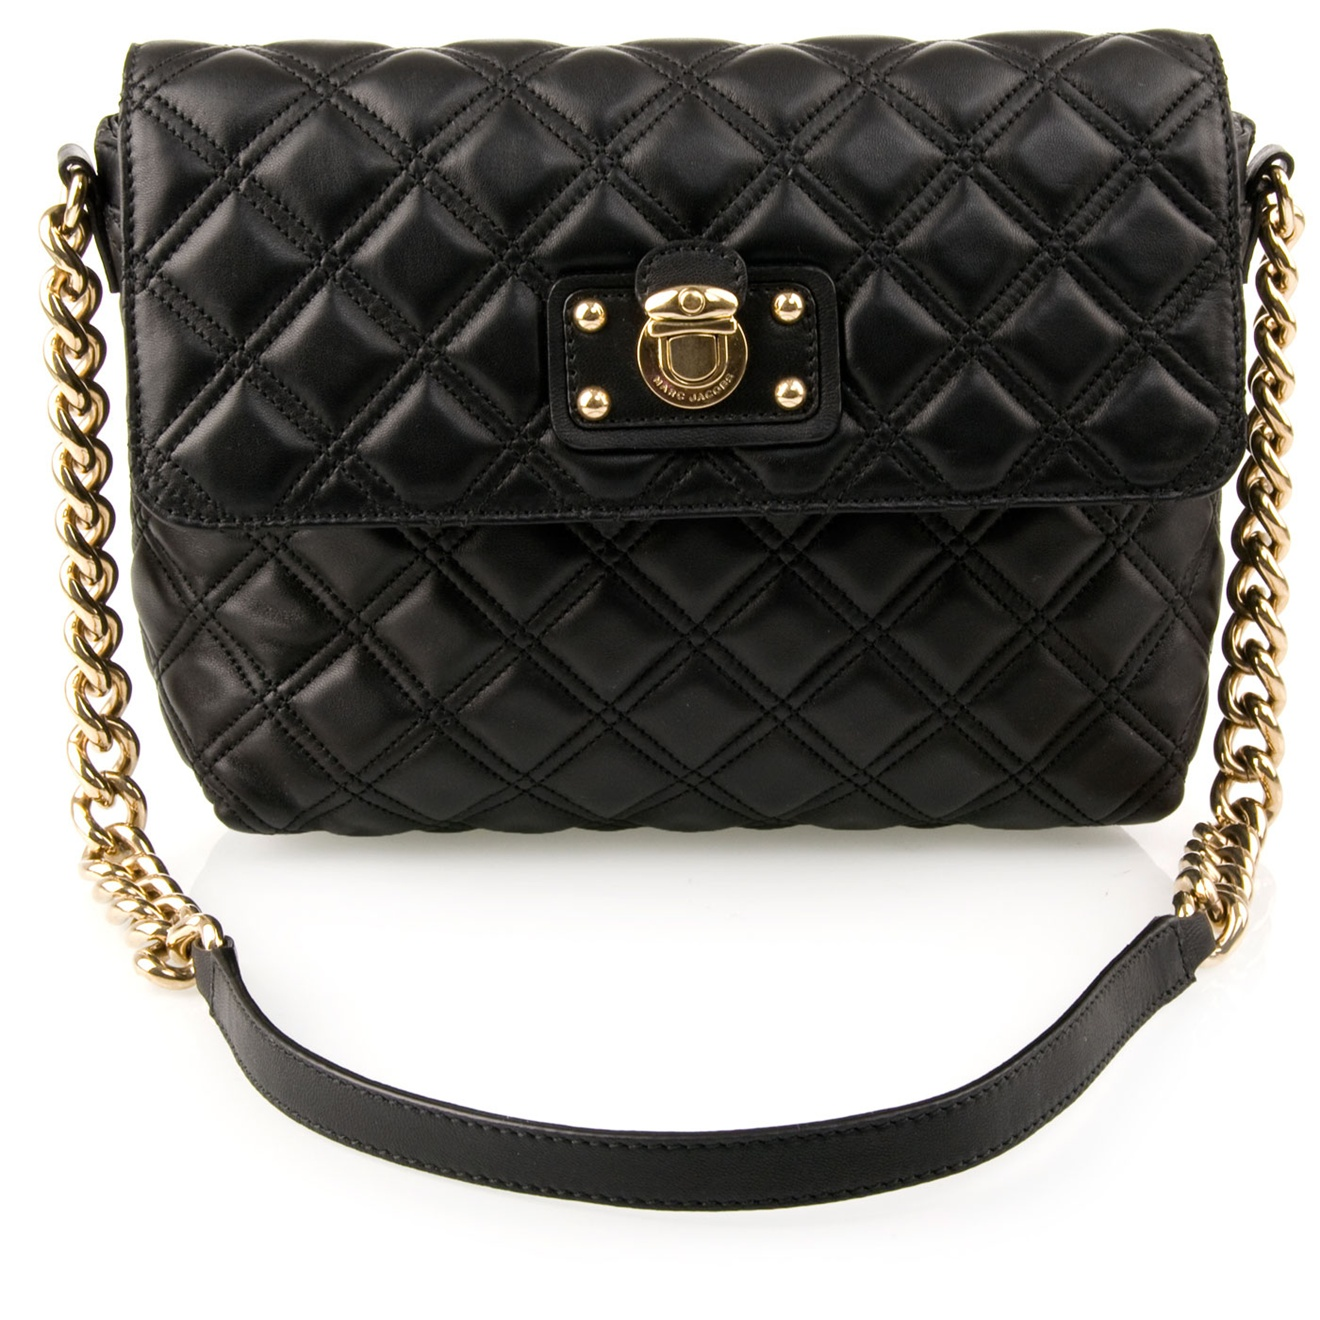 28ce19db33f7 Marc Jacobs Quilted Chain Bag in Black - Lyst